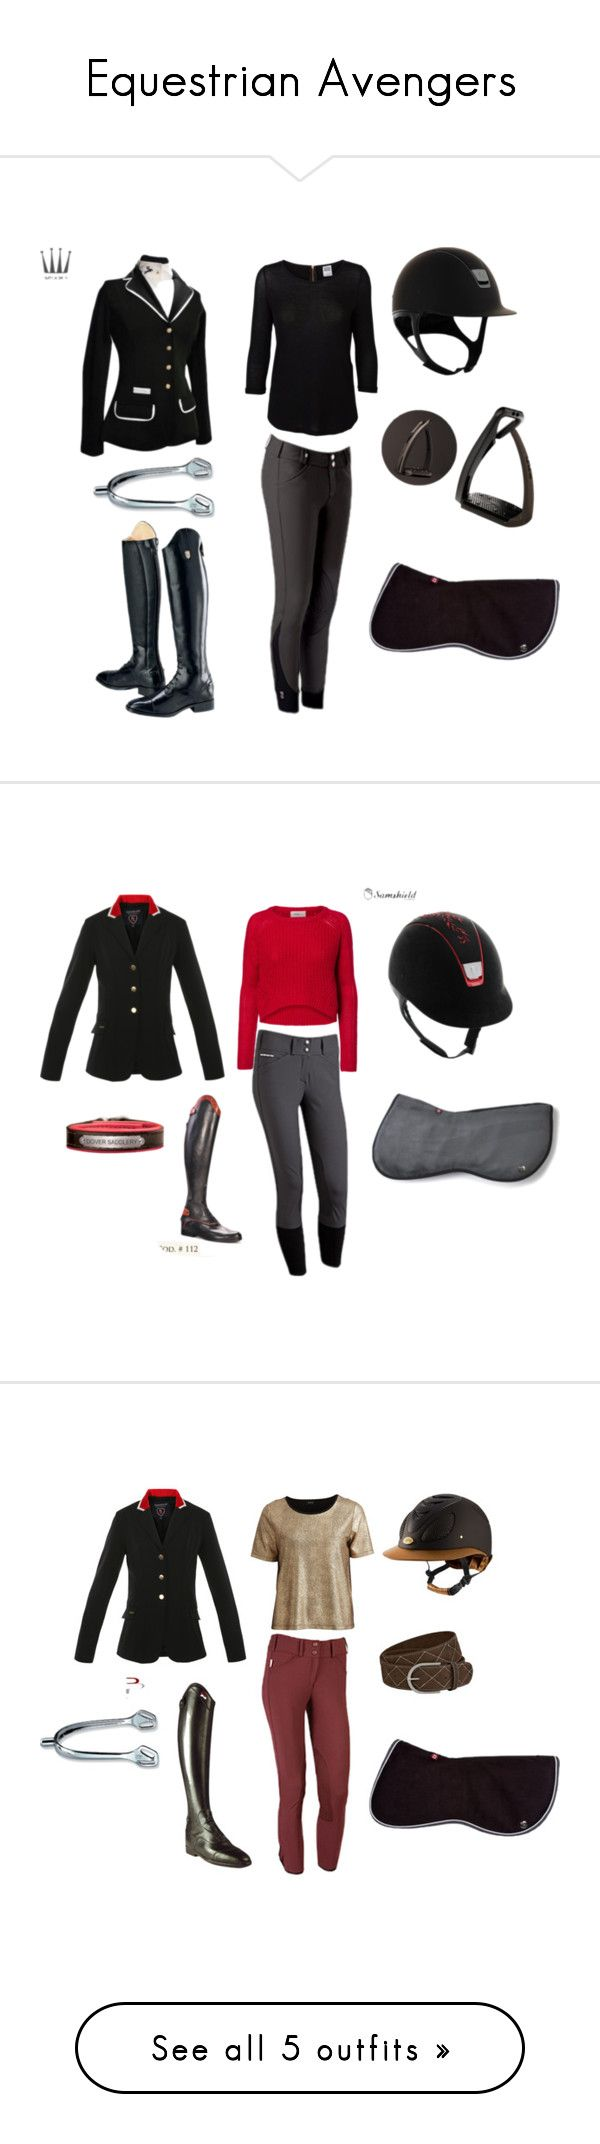 """""""Equestrian Avengers"""" by overthecrossrails ❤ liked on Polyvore featuring Vero Moda, Ariat, VILA, Parlanti, CC, Joules and Spooks"""